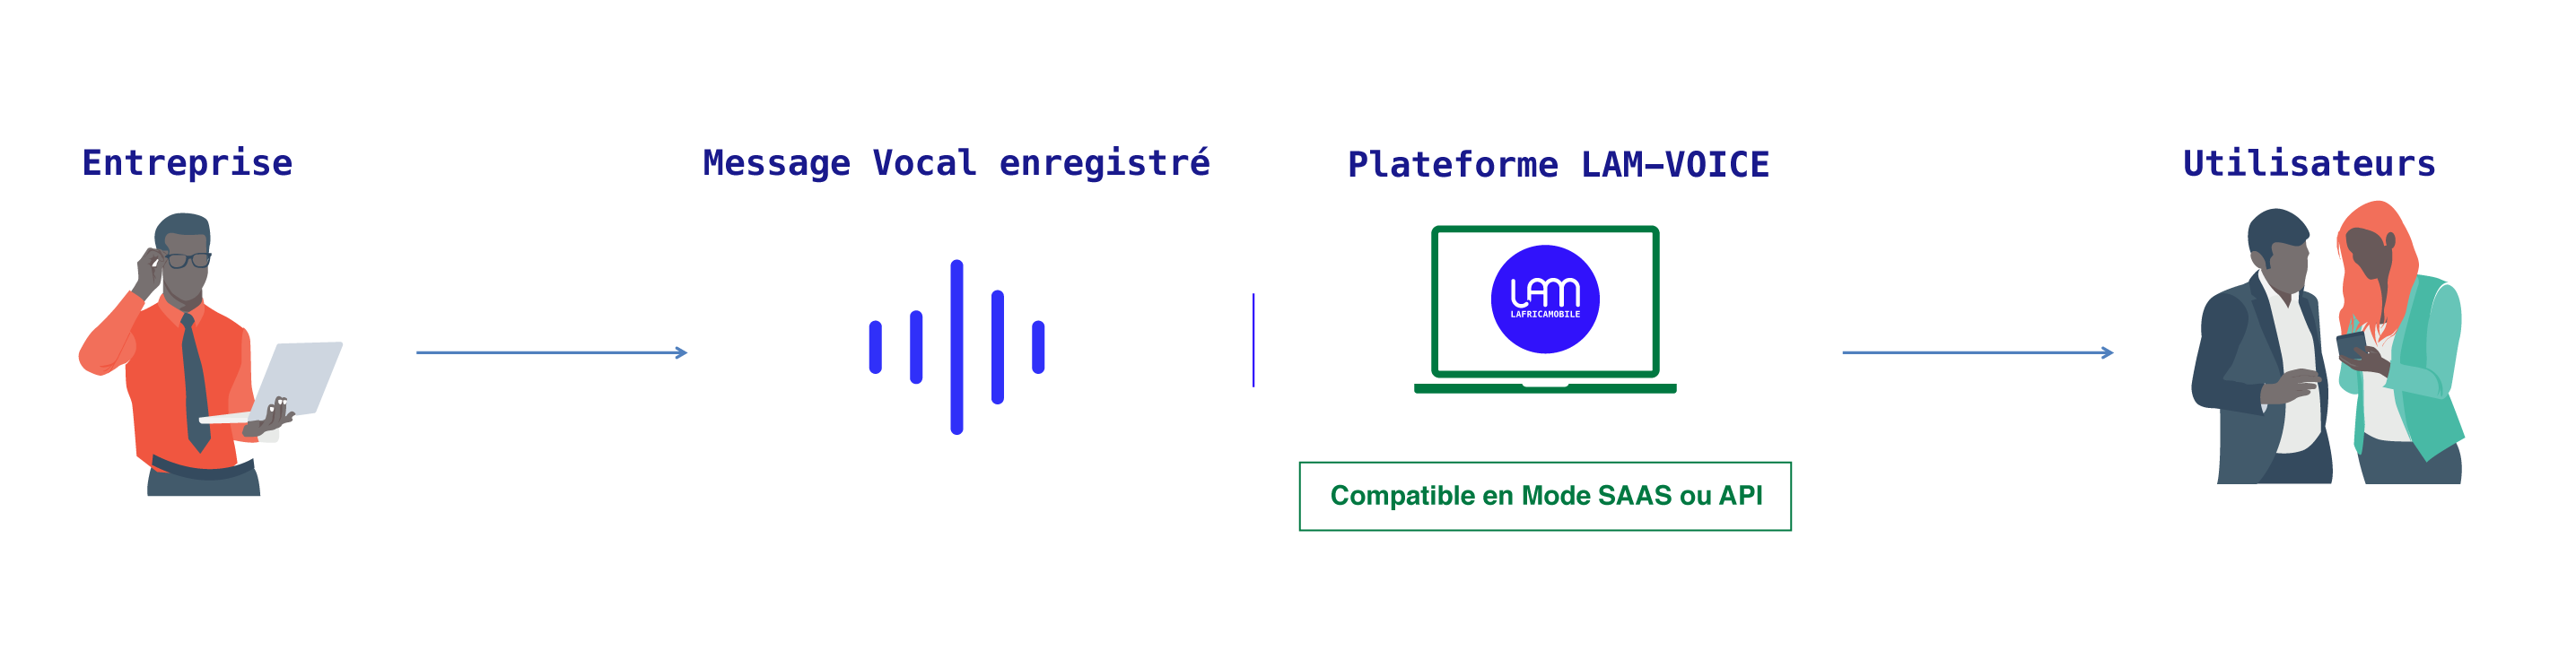 //lafricamobile.com/wp-content/uploads/2021/06/vocal-howto.png